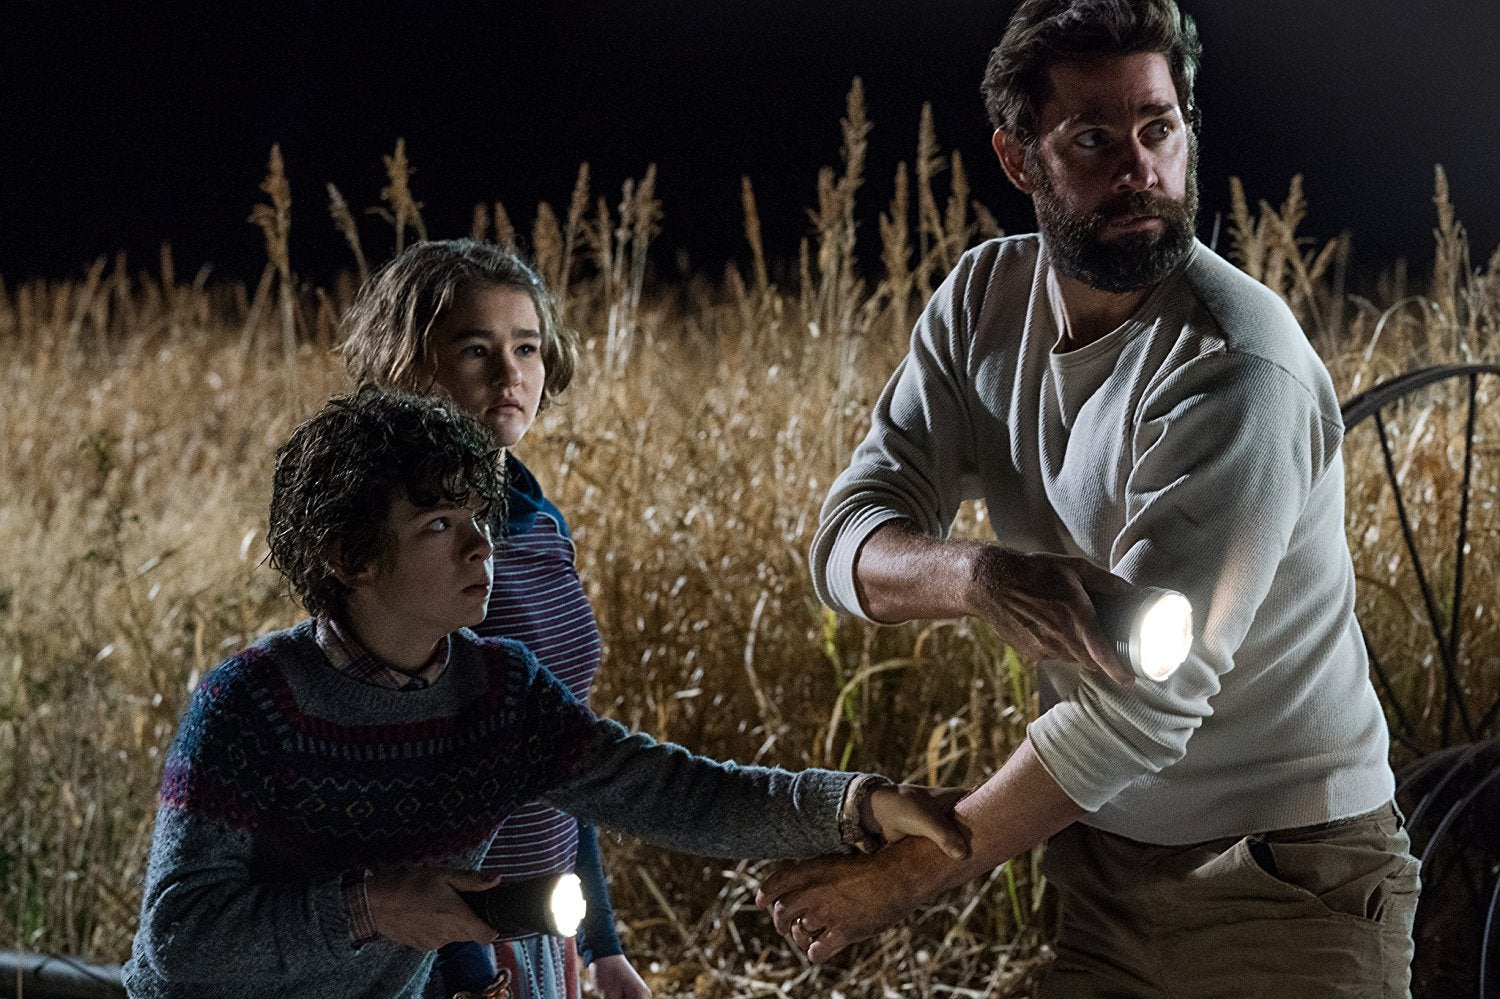 John Krasinski and the kids from A Quiet Place stand in a field of corn, looking terrified. John Krasinski and his son both brandish flashlights. They are looking off to the right. The son grip John Krasinski's arm.